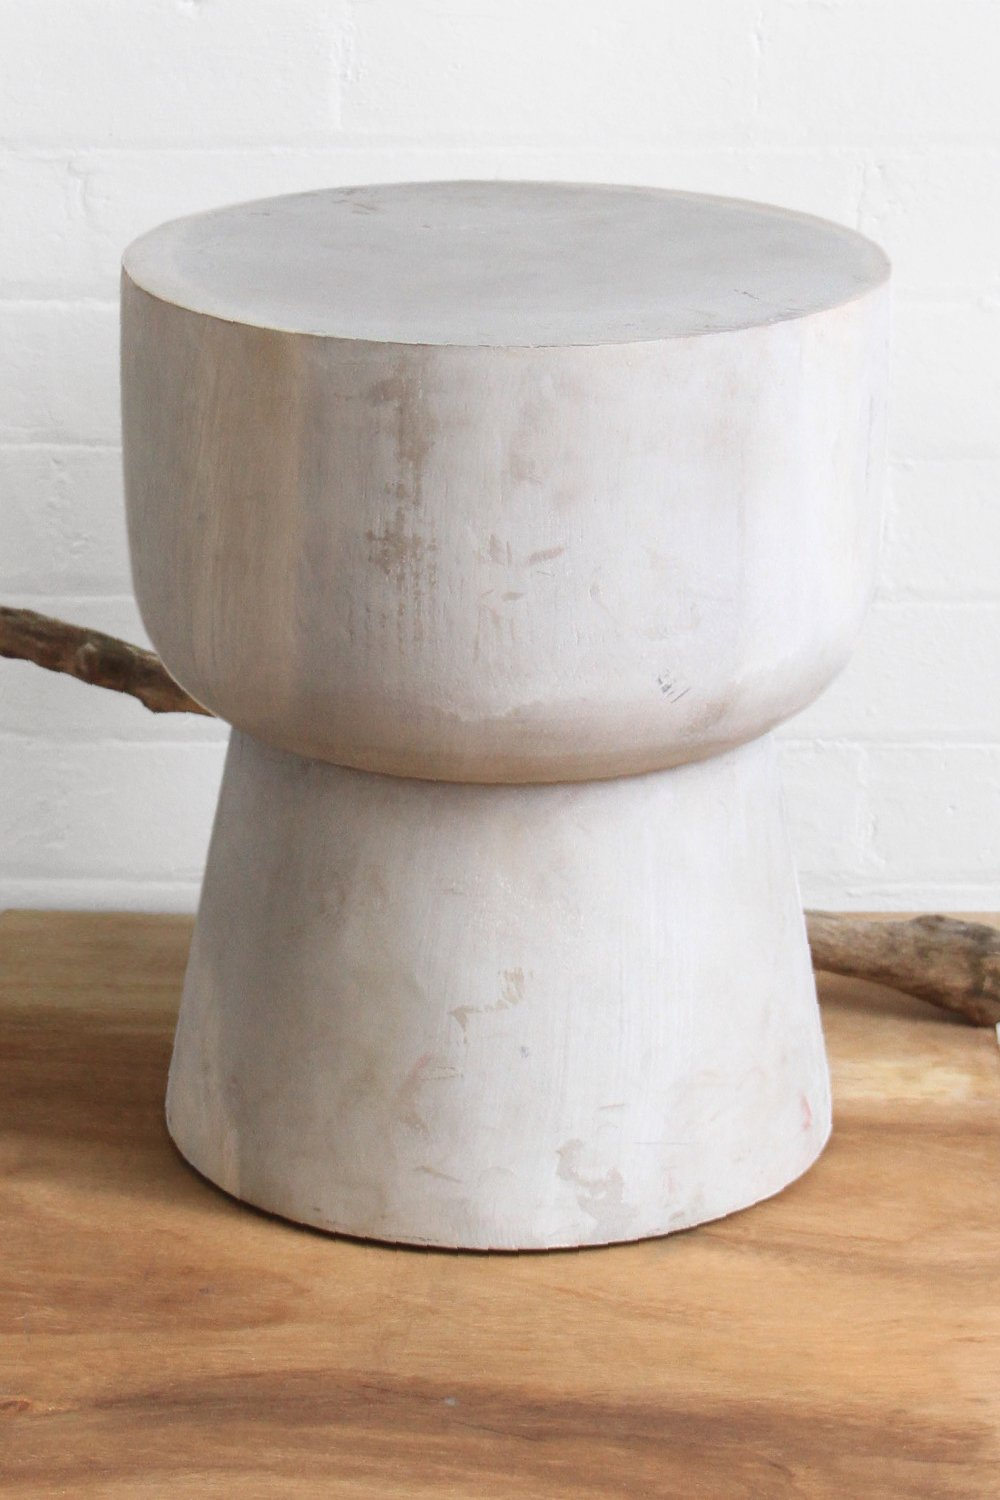 SanBasics Solid Suar Timber Mushroom Stool - White Wash